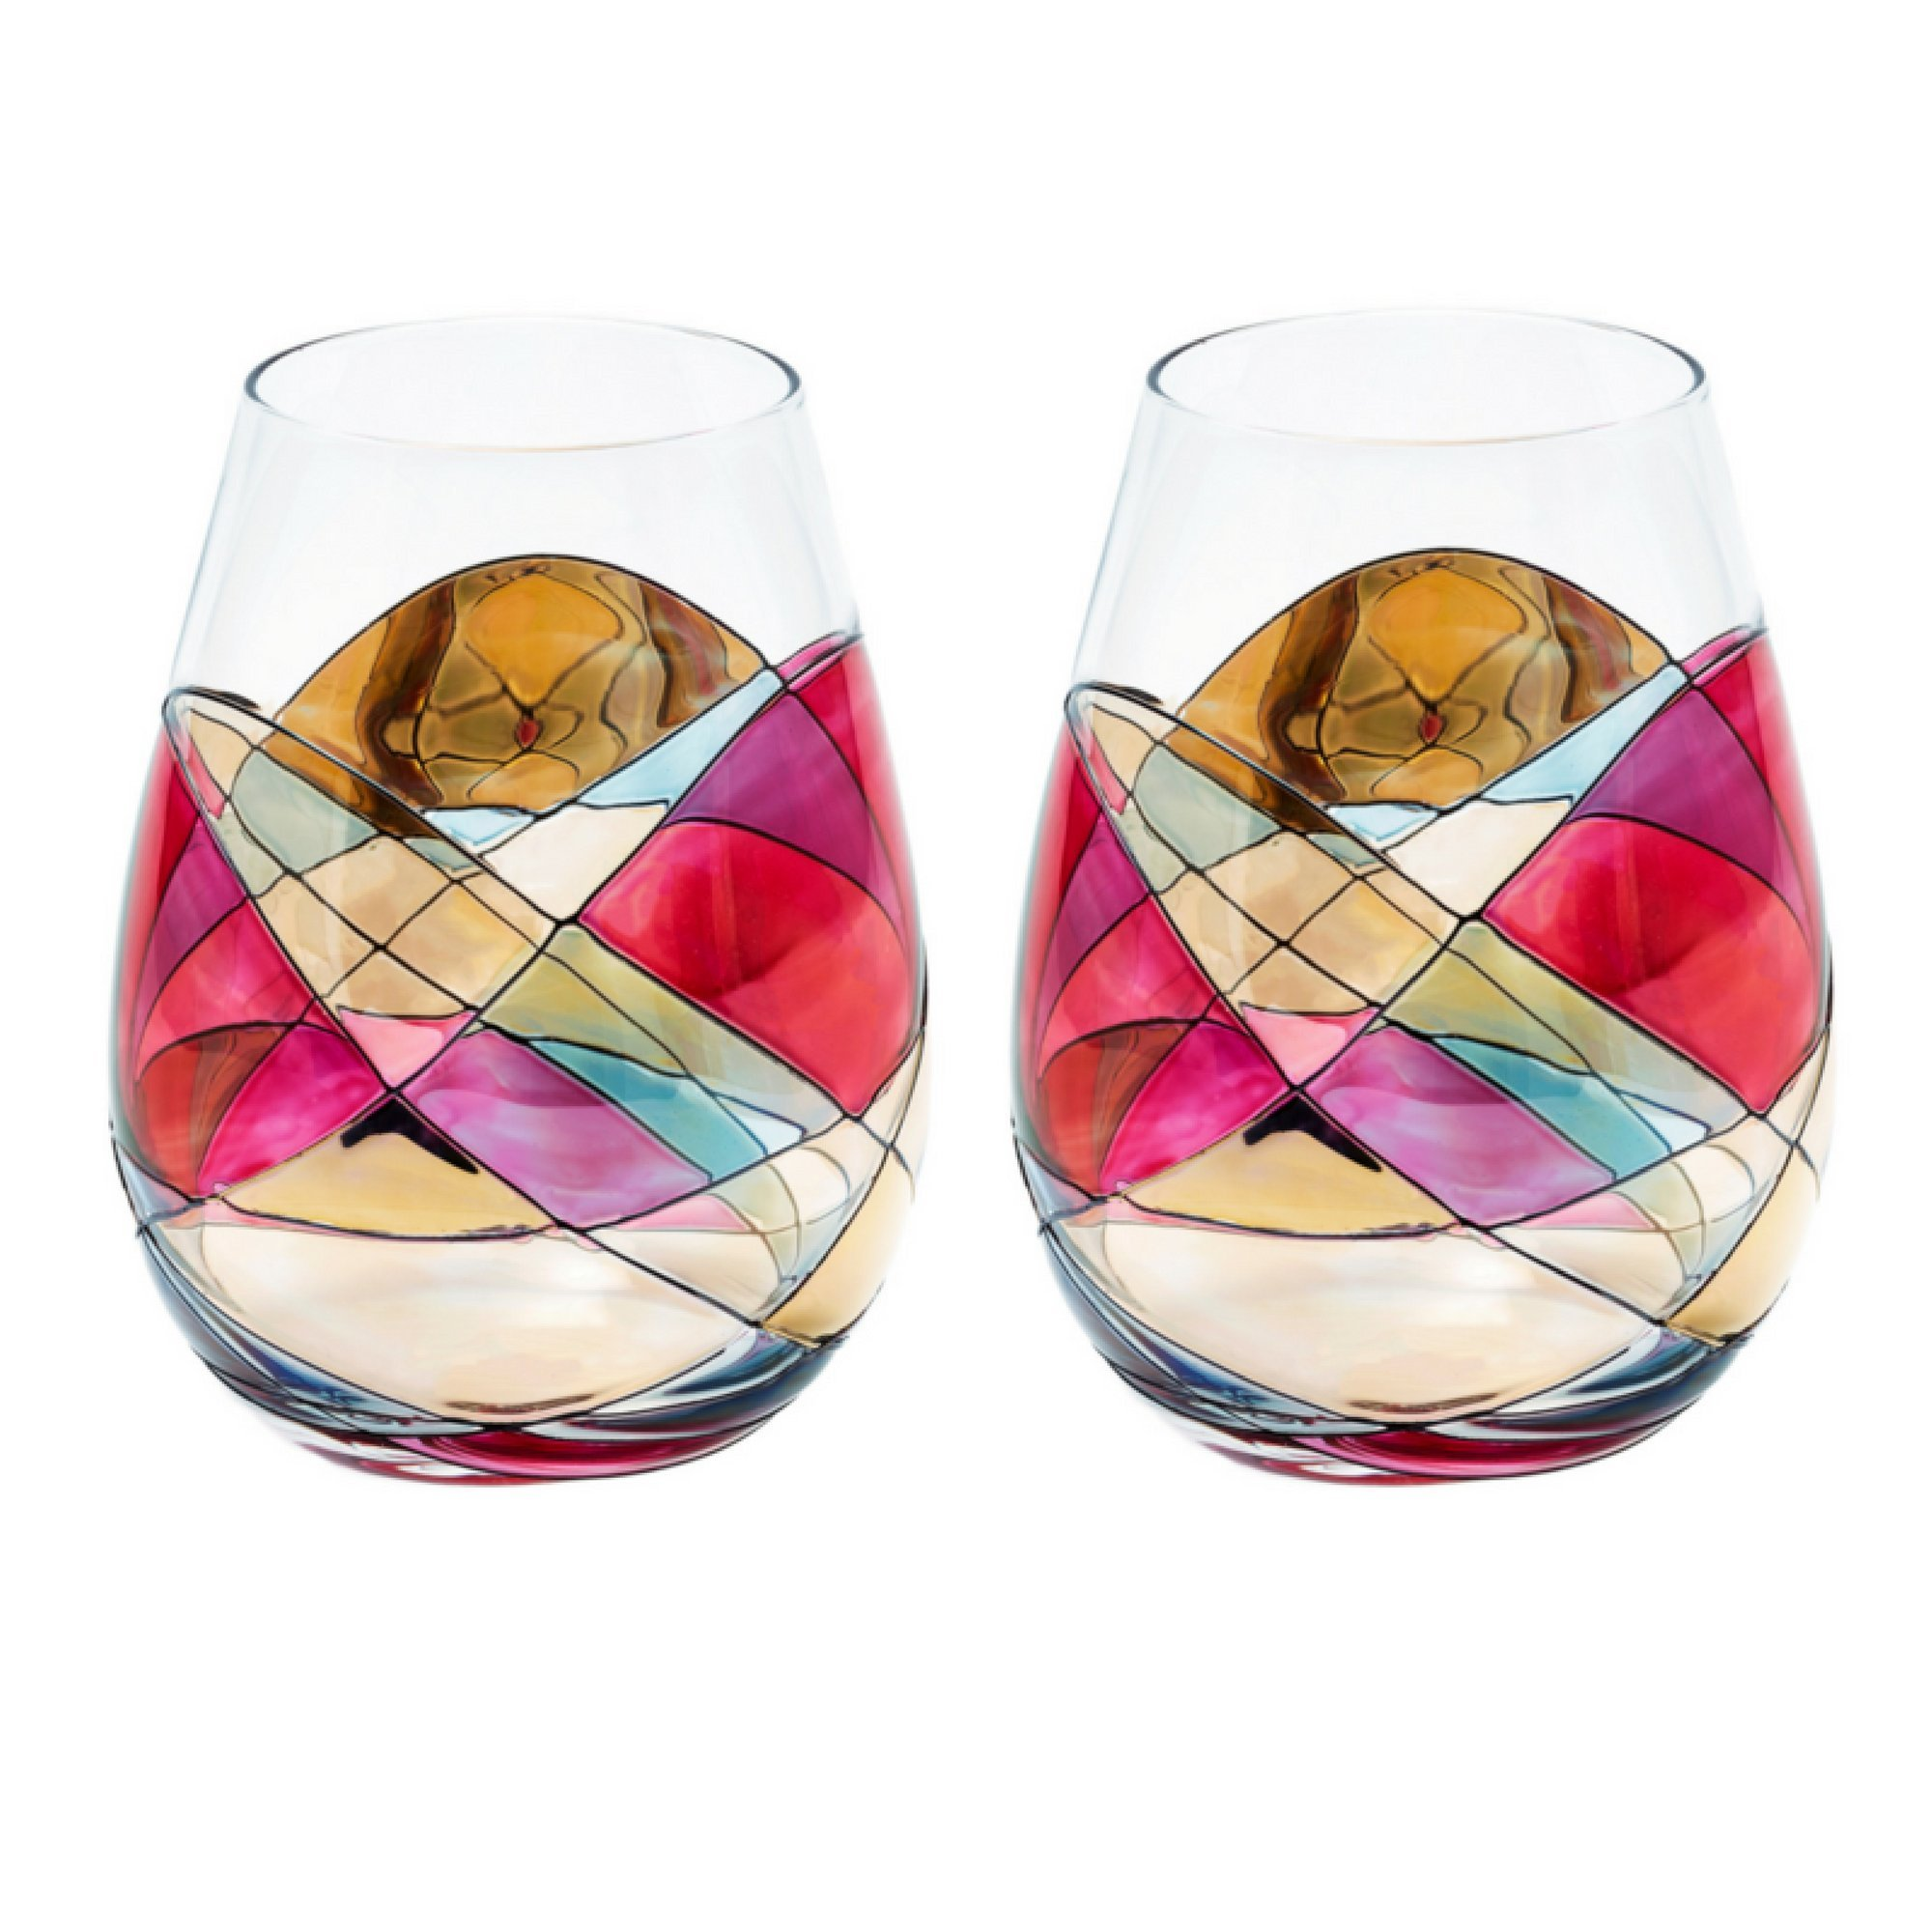 ANTONI BARCELONA Stemless Wine Glasses RED 21Oz - SET 2 - White or Red Wine, Unique Gifts Weddings Birthday Anniversary, Hand Painted & Mouth Blown Stunning Glassware Collection Popular Colorful (2)